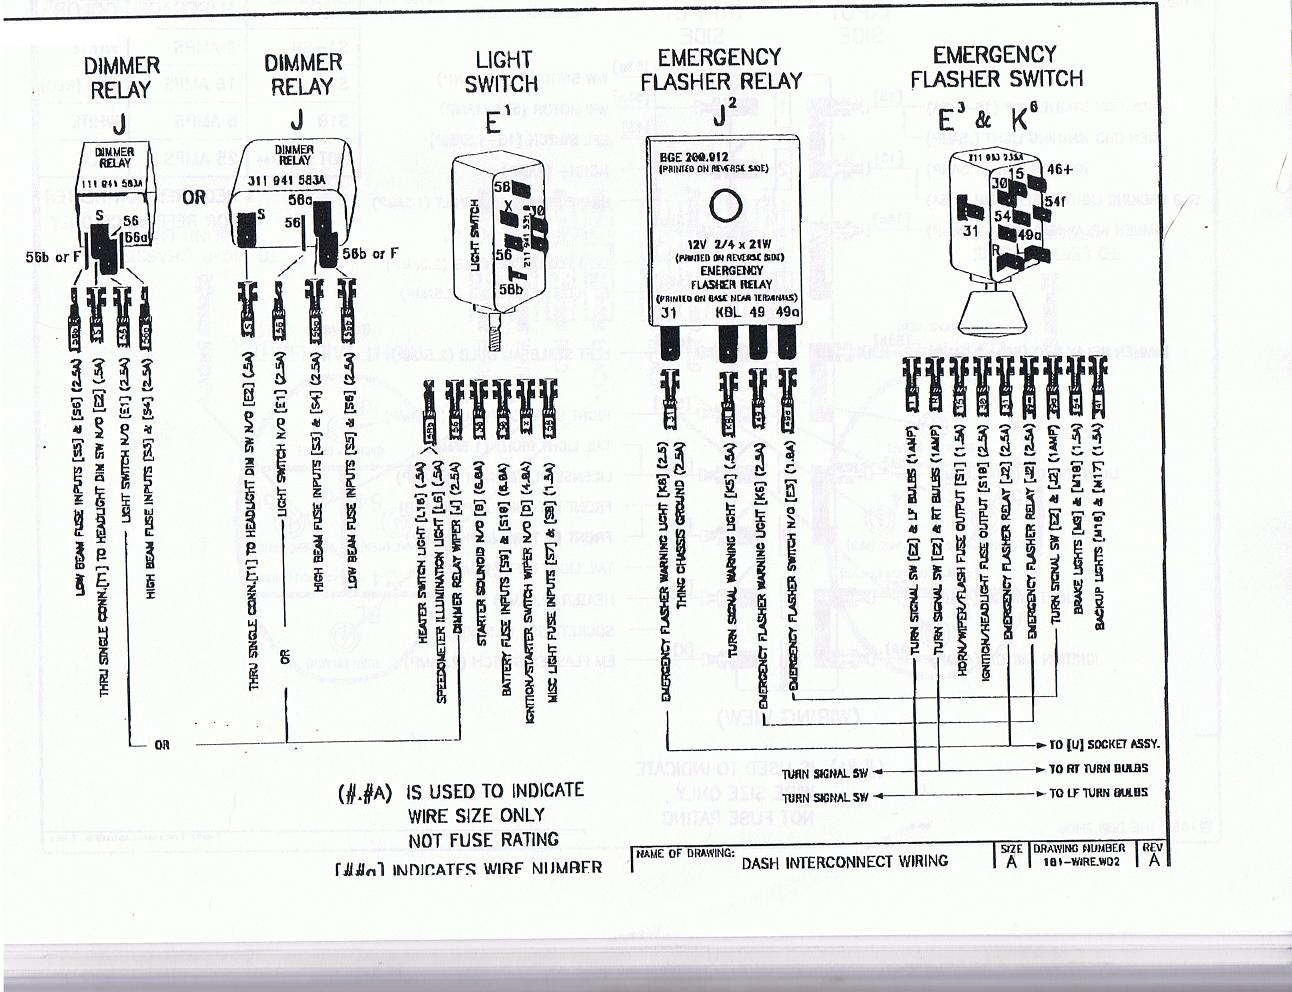 2002 Vw Beetle Fuse Box Diagram The Portal And Forum Of Wiring Thing Diagrams Scematic Rh 30 Jessicadonath De Location Diesel